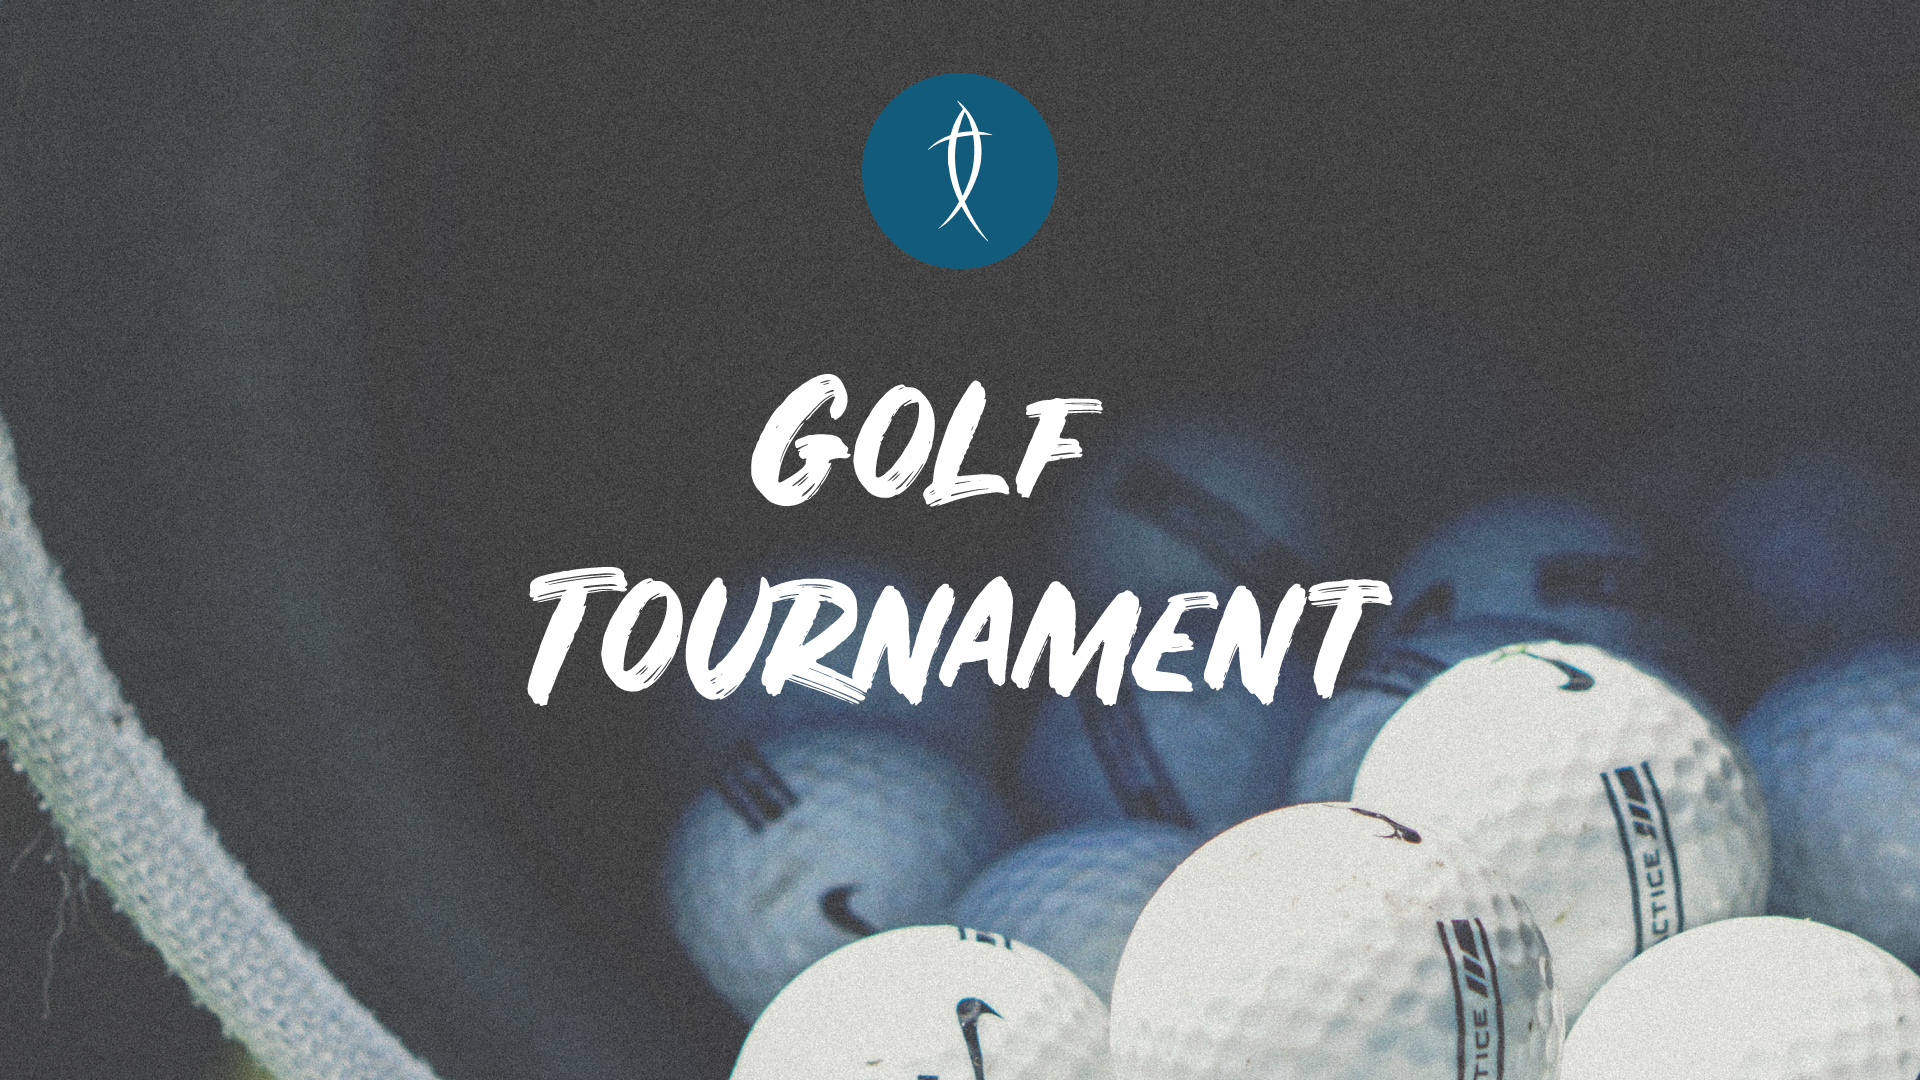 Golf-Tournament.jpg